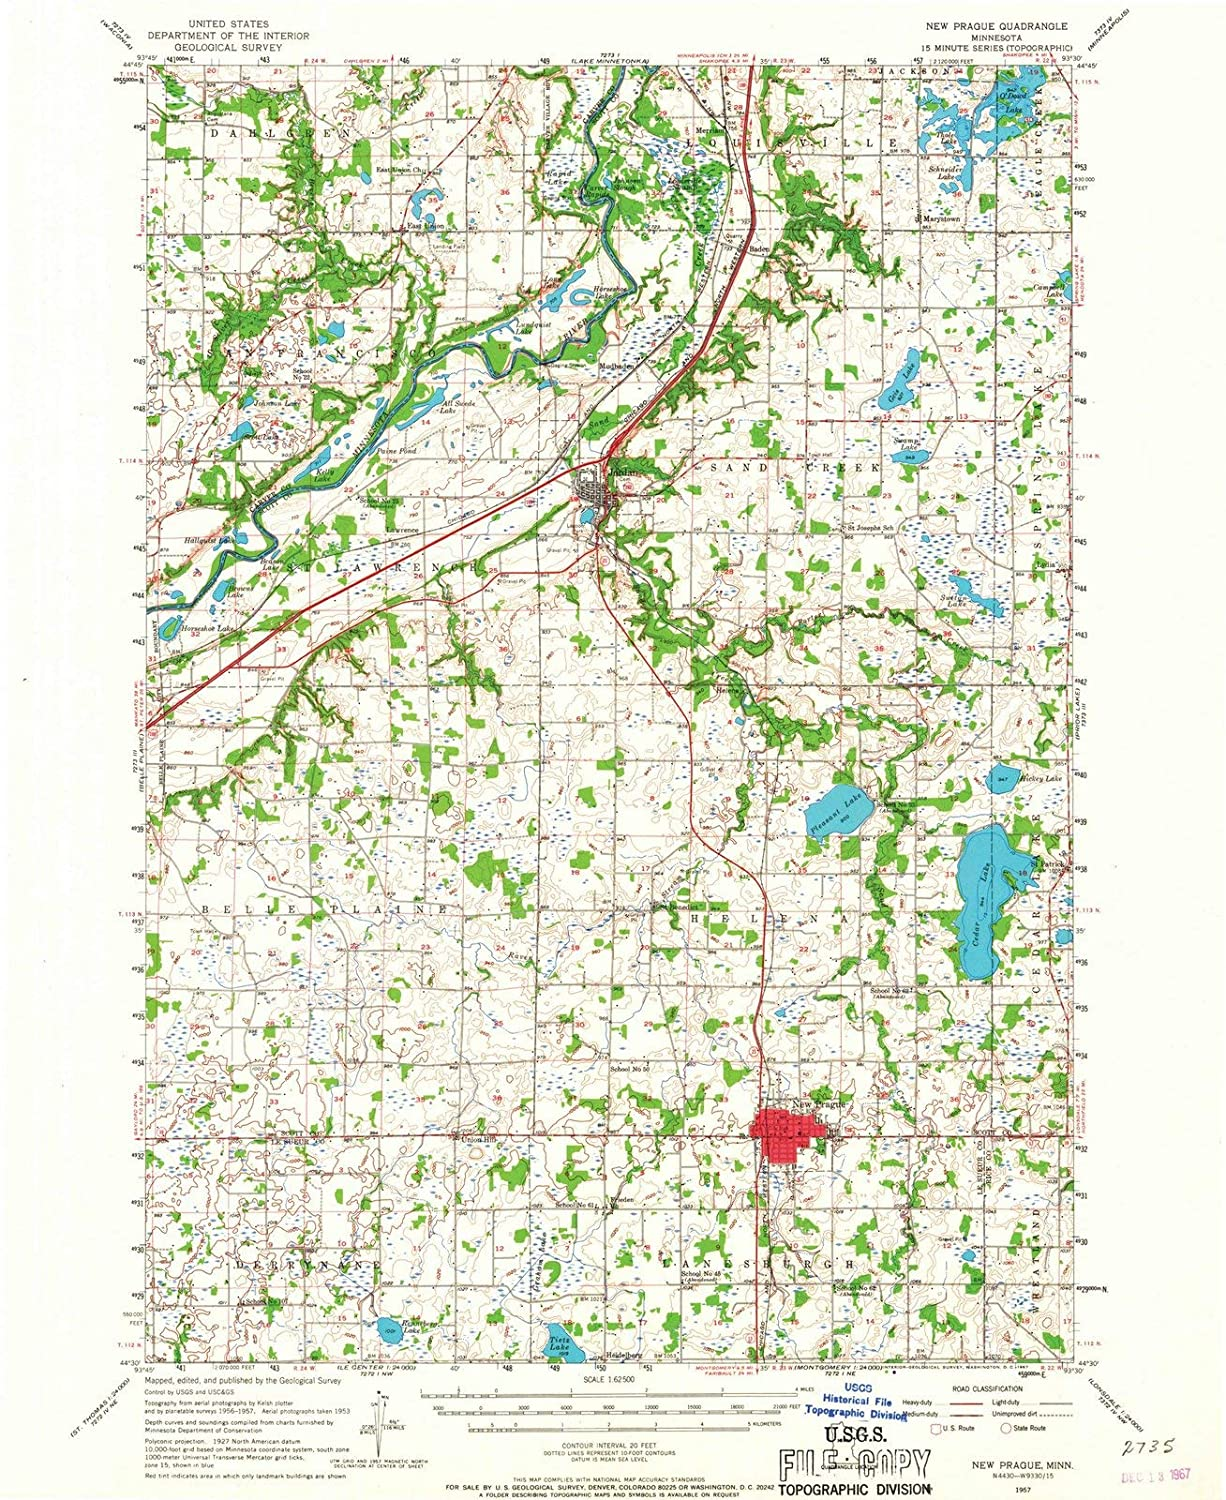 Amazon.com: Minnesota Maps | 1957 New Prague, MN USGS ... on map of thief river falls mn, map of parkers prairie mn, map of excelsior mn, map of ogilvie mn, map of forest lake mn, map of east grand forks mn, map of albertville mn, map of grasston mn, map of nicollet mn, map of eagan mn, map of becker mn, map of white bear lake mn, map of deephaven mn, map of truman mn, map of erskine mn, map of fairfax mn, map of lakeville mn, map of sauk centre mn, map of lake city mn, map of inver grove heights mn,